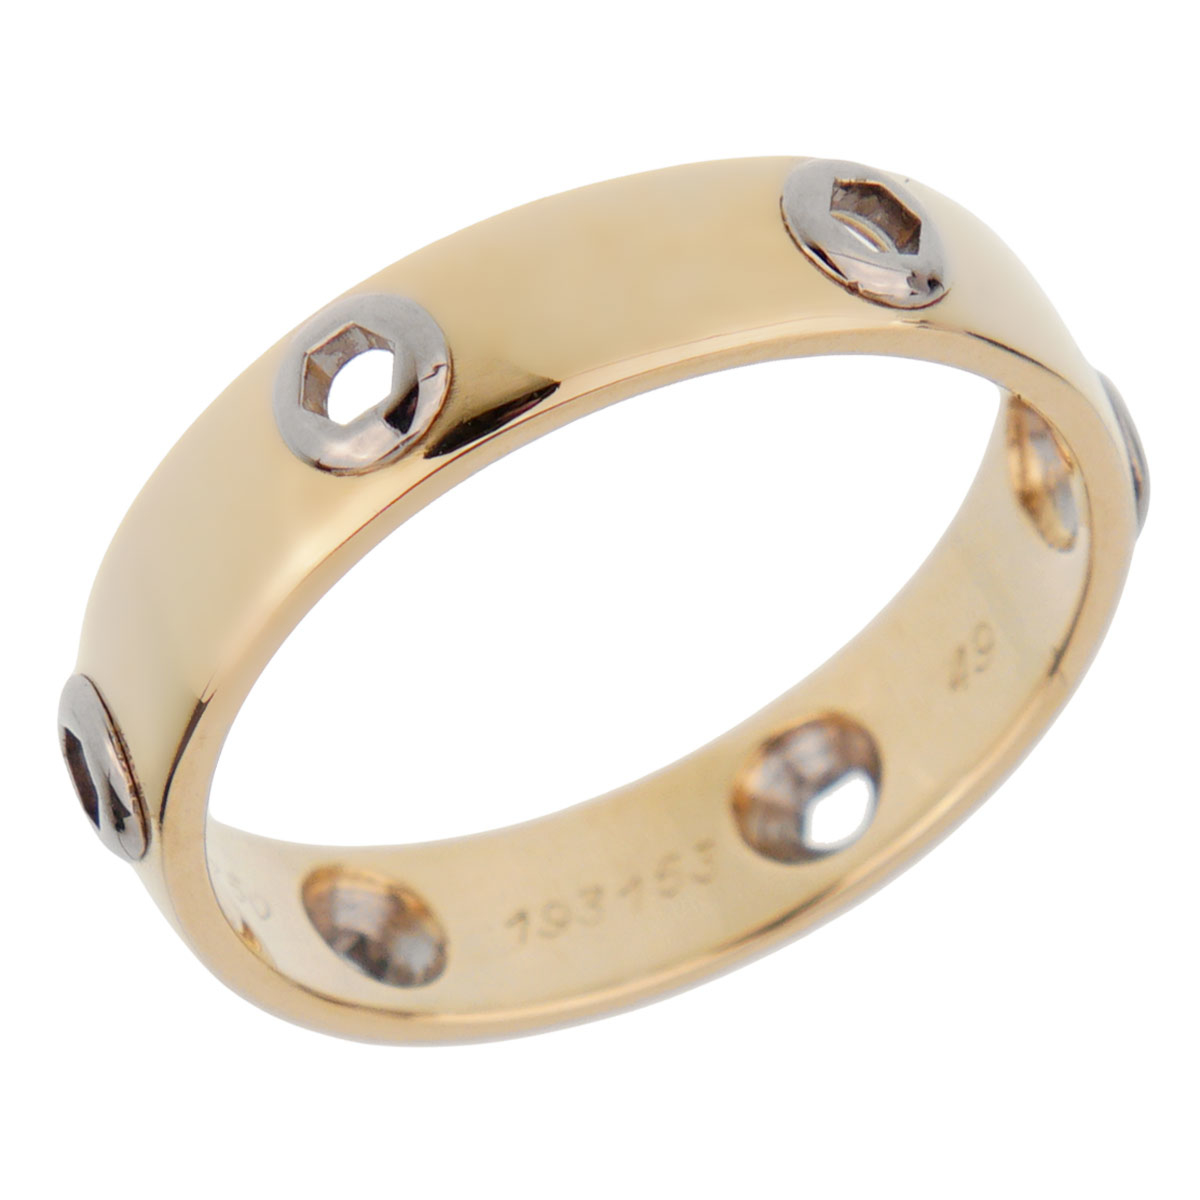 Cartier Love Series Yellow Gold Band Ring